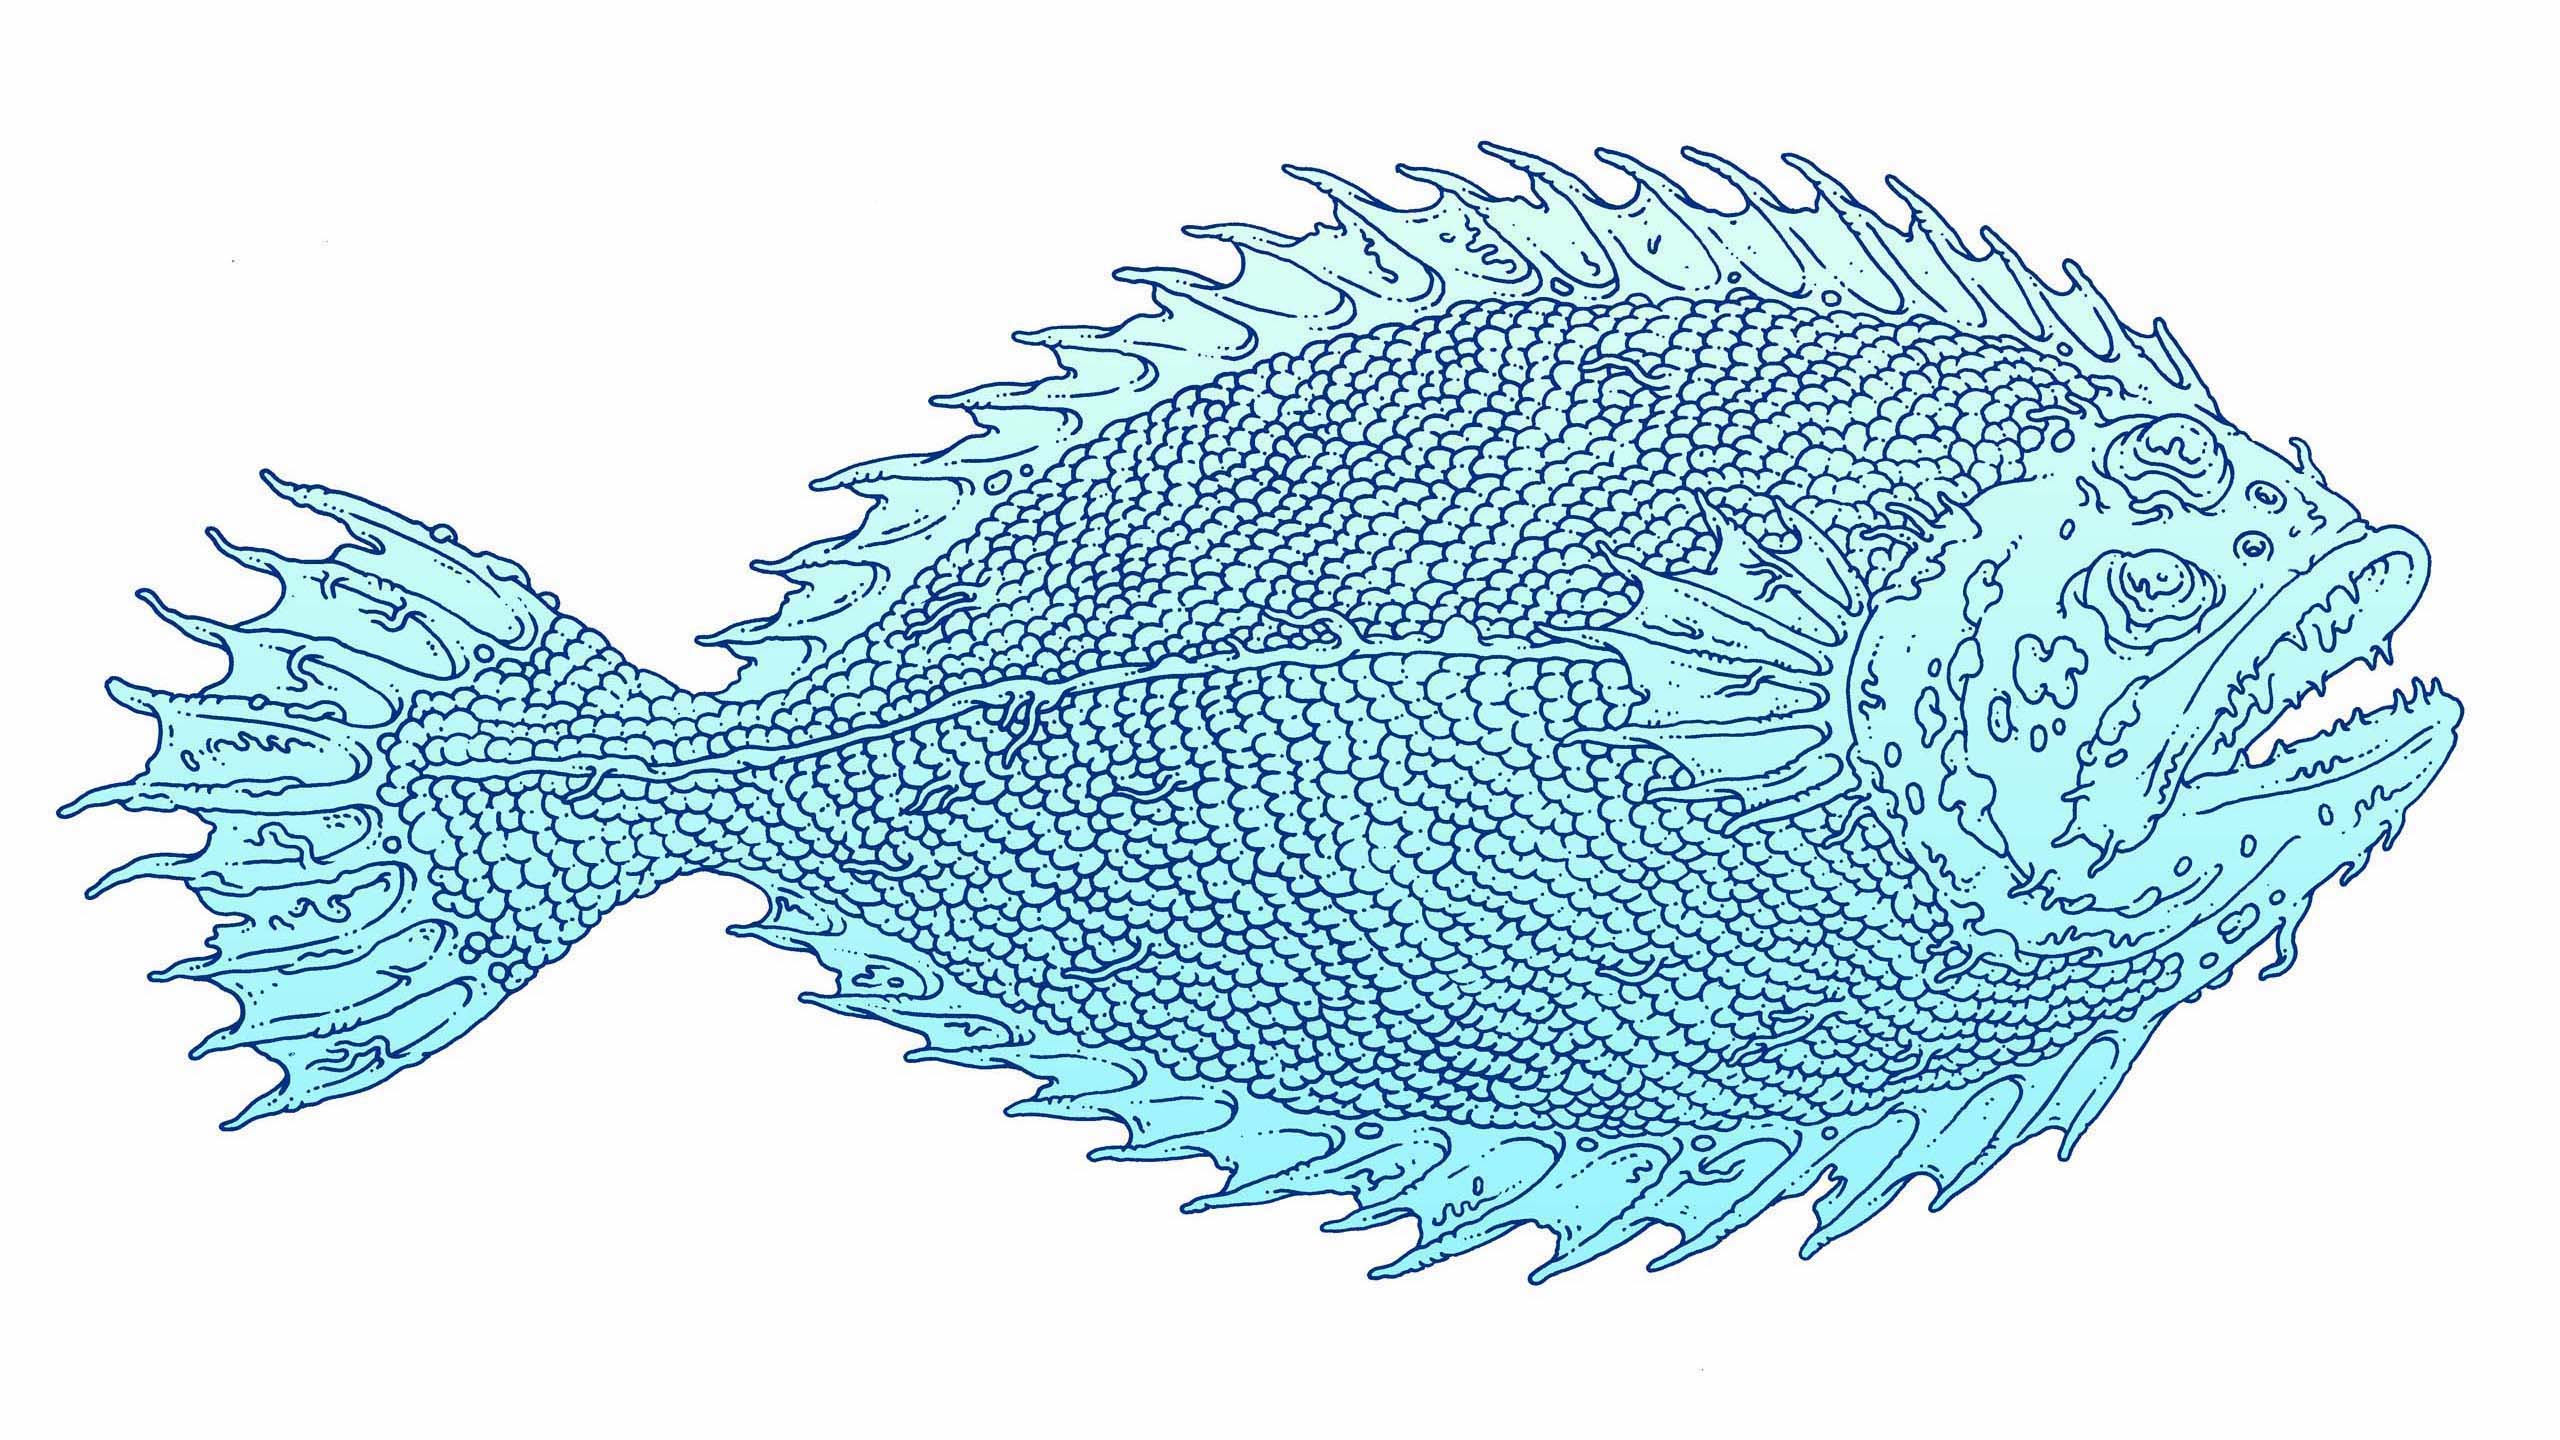 Flounder creature final